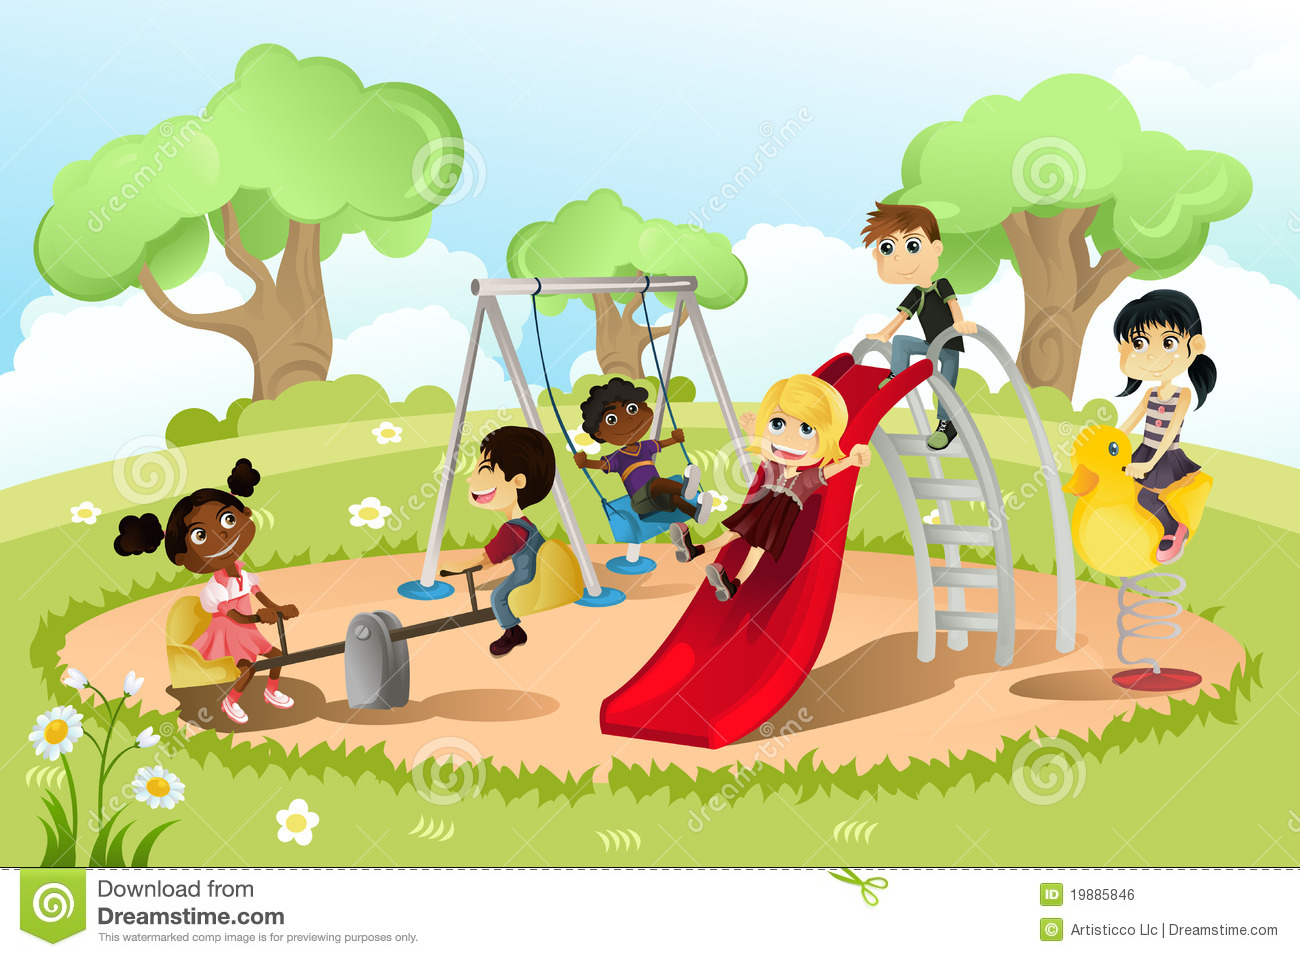 Children in playground royalty free stock image image for Adaptacion jardin infantil